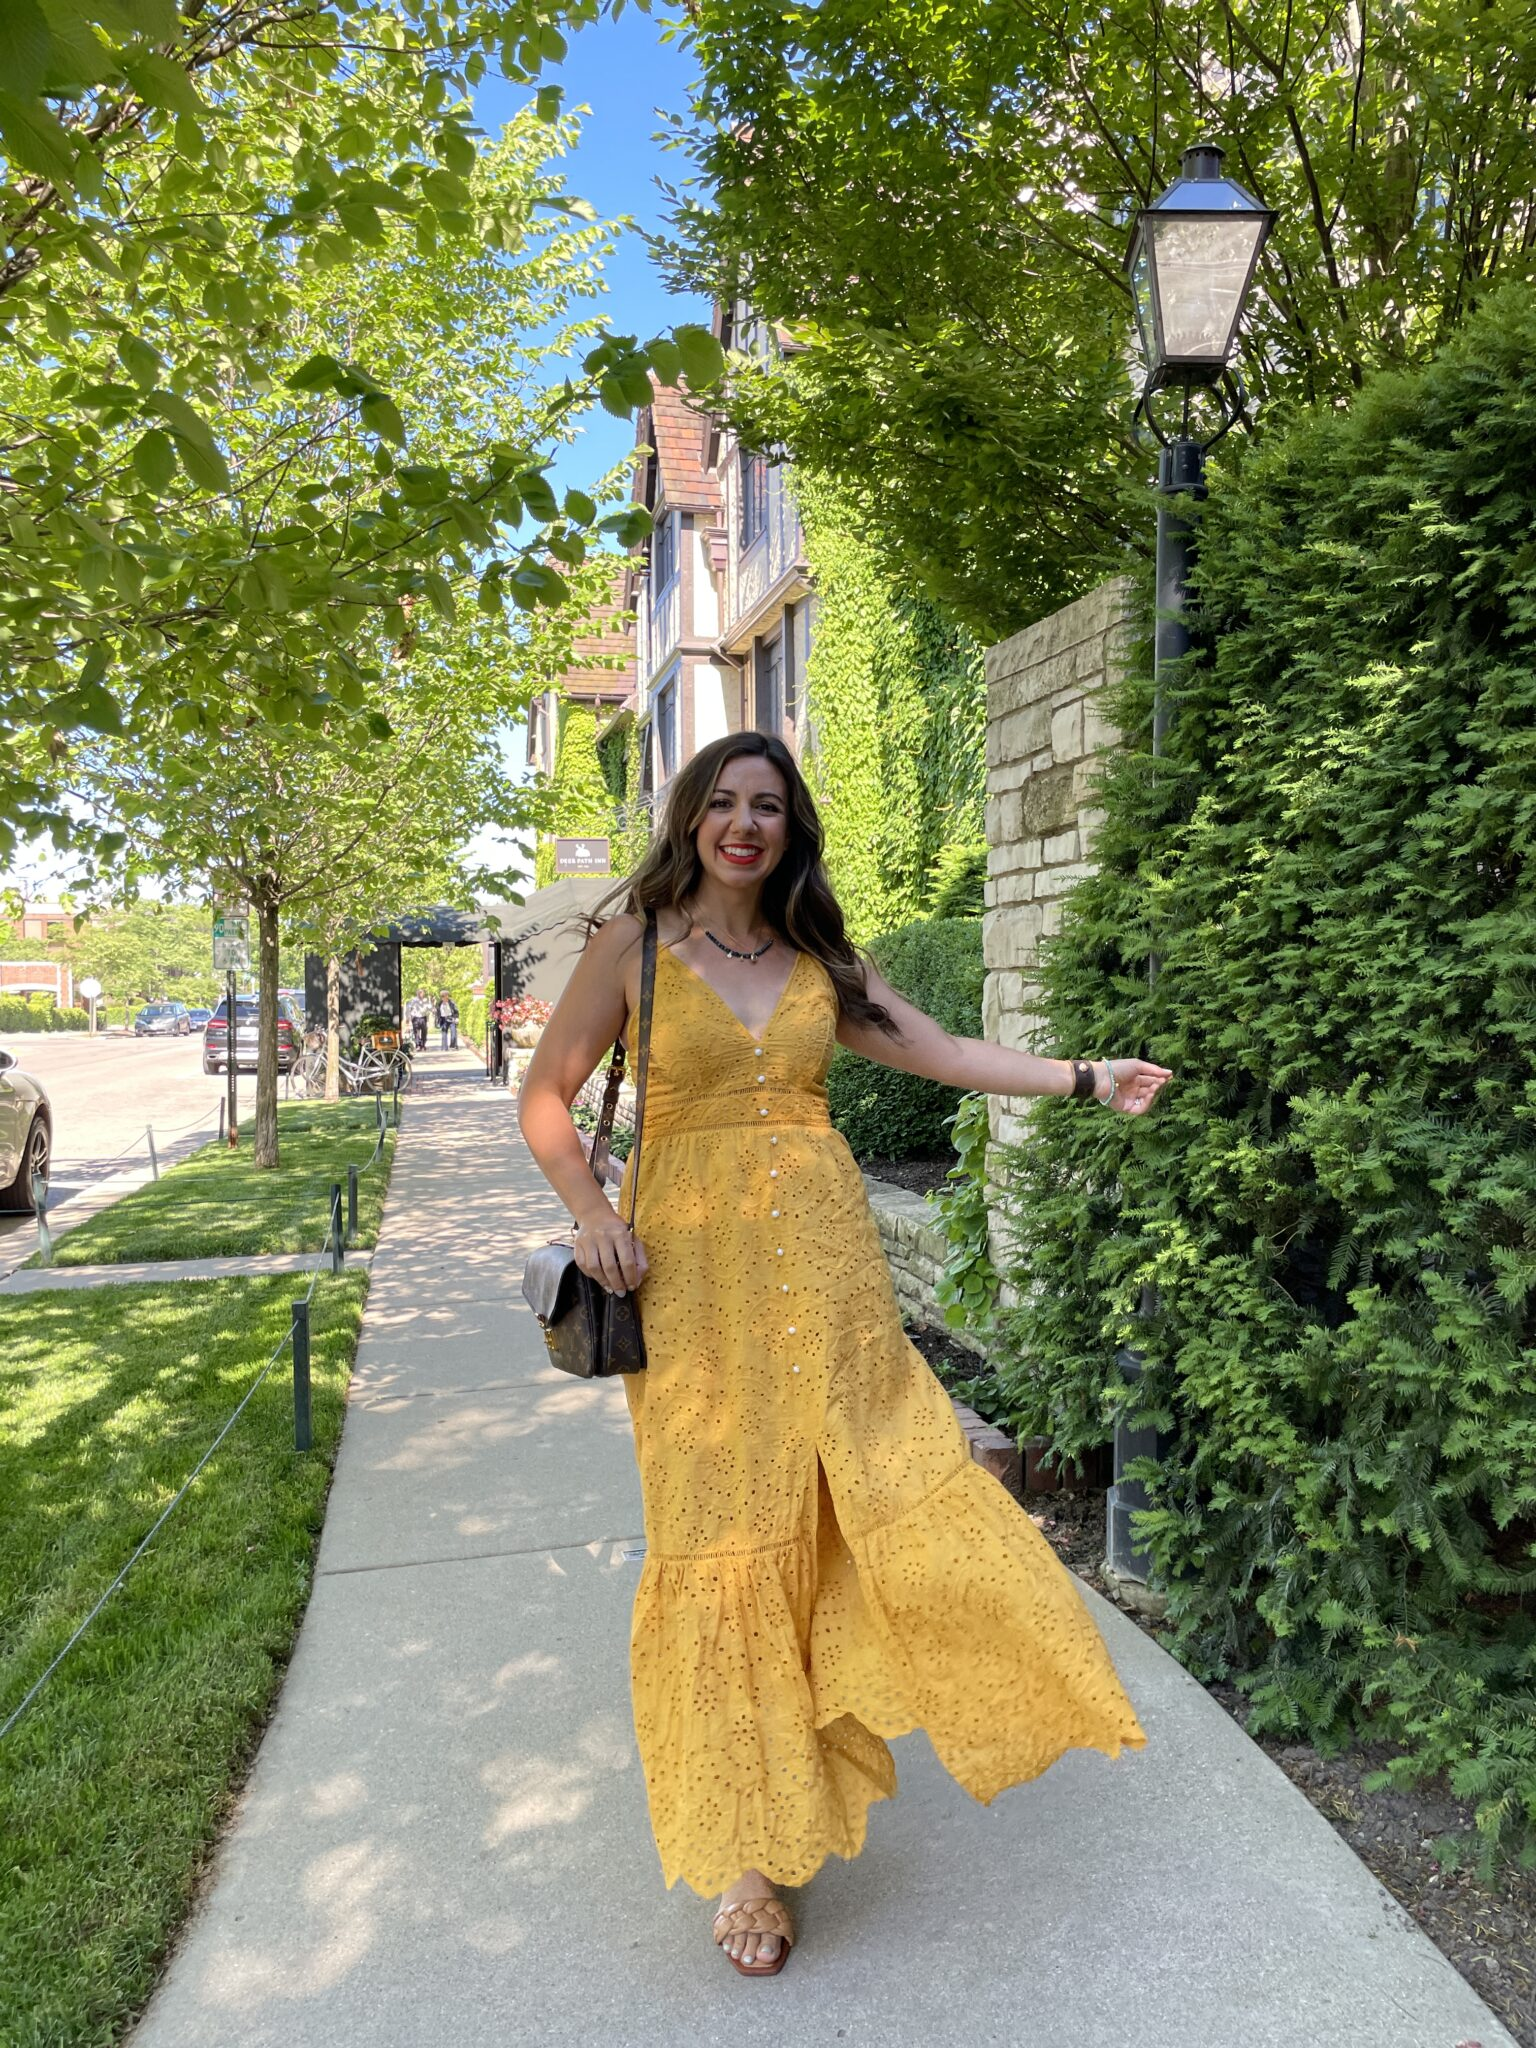 Eyelet Clothing by popular Chicago fashion blog, Glass of Glam: image of a woman walking outside next to a fence covered in ivy and wearing a yellow eyelet maxi dress with tan braided sandals and a silpada necklace.